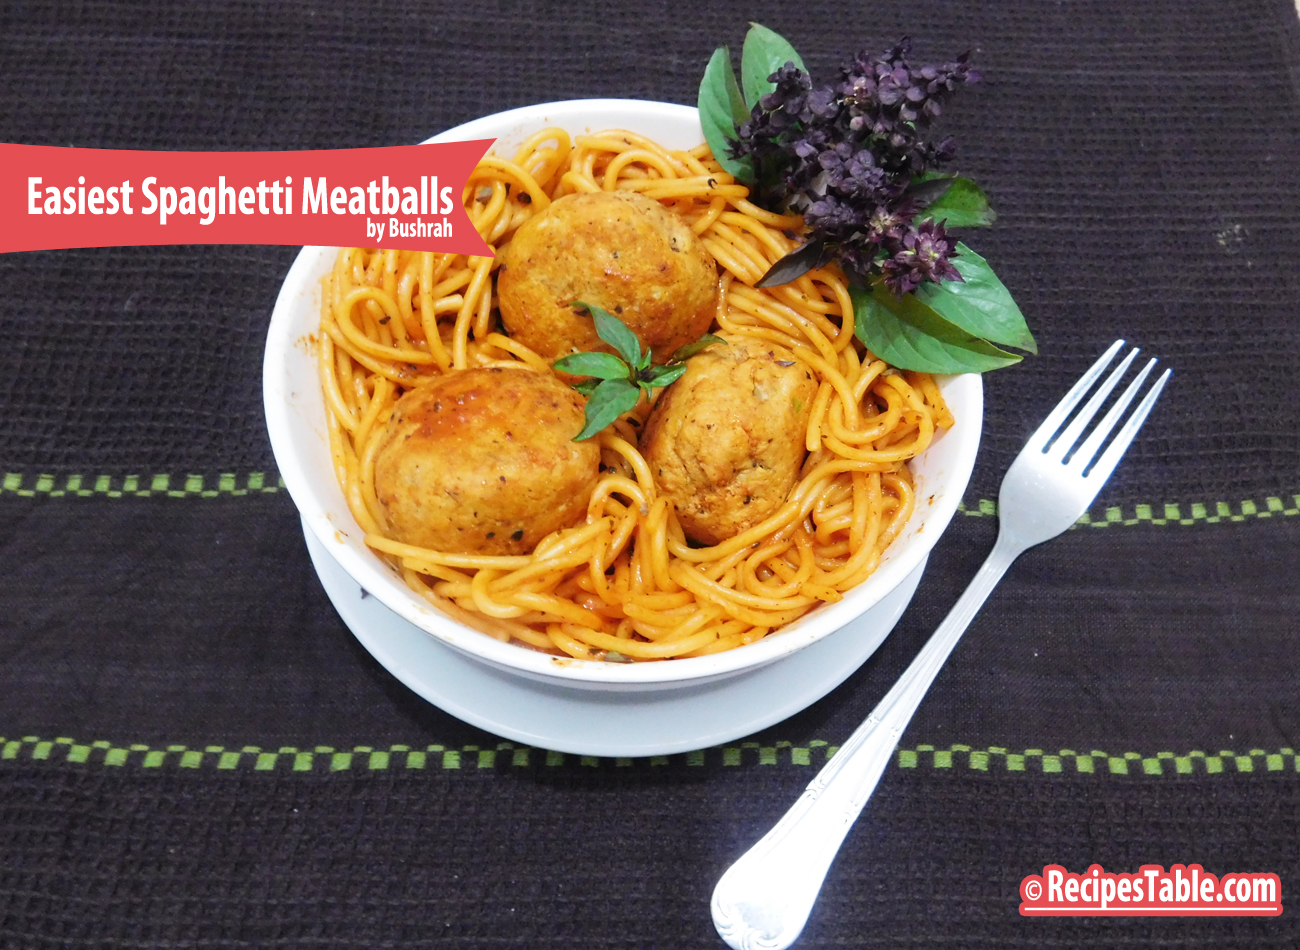 The Best and Easiest Spaghetti Meatballs